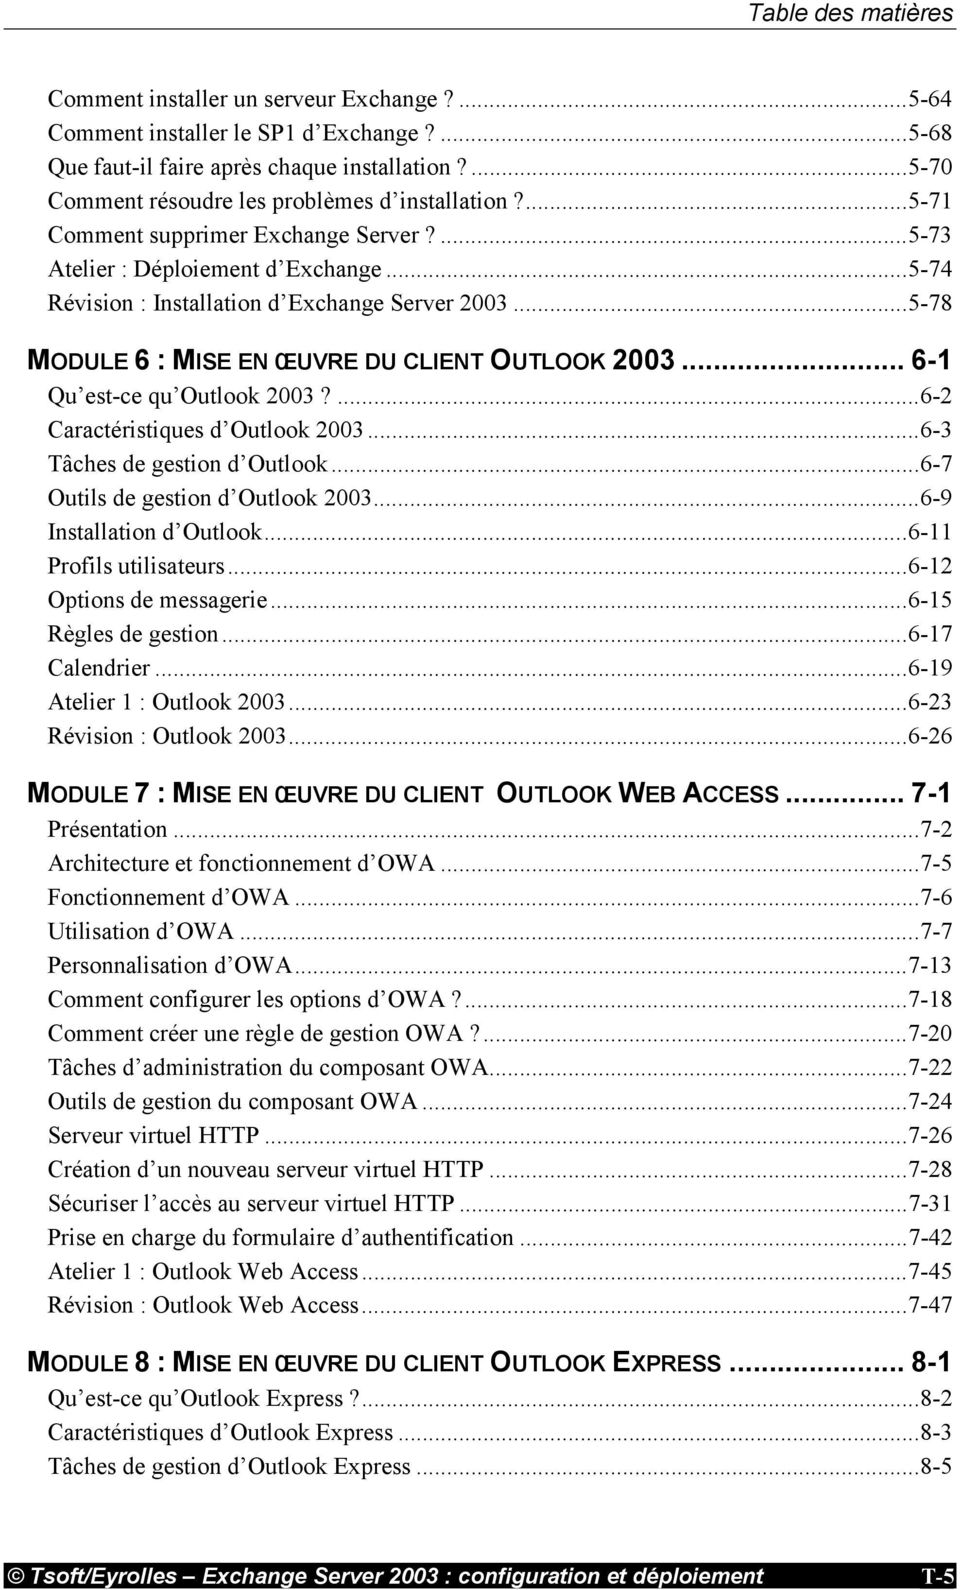 .. 6-1 Qu est-ce qu Outlook 2003?...6-2 Caractéristiques d Outlook 2003...6-3 Tâches de gestion d Outlook...6-7 Outils de gestion d Outlook 2003...6-9 Installation d Outlook...6-11 Profils utilisateurs.